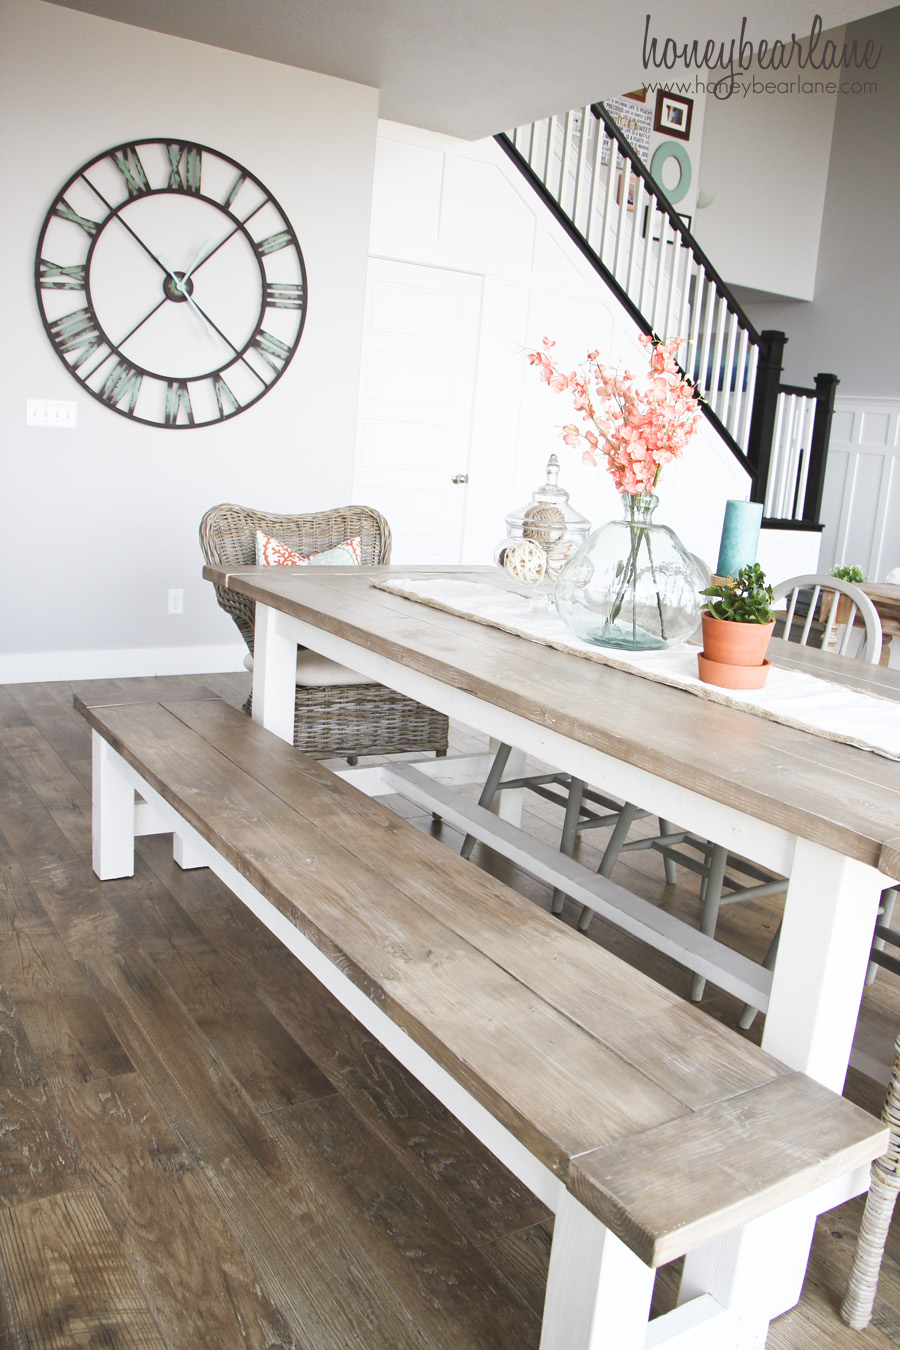 Dining Room Chair Design Plans diy farmhouse table and bench - honeybear lane